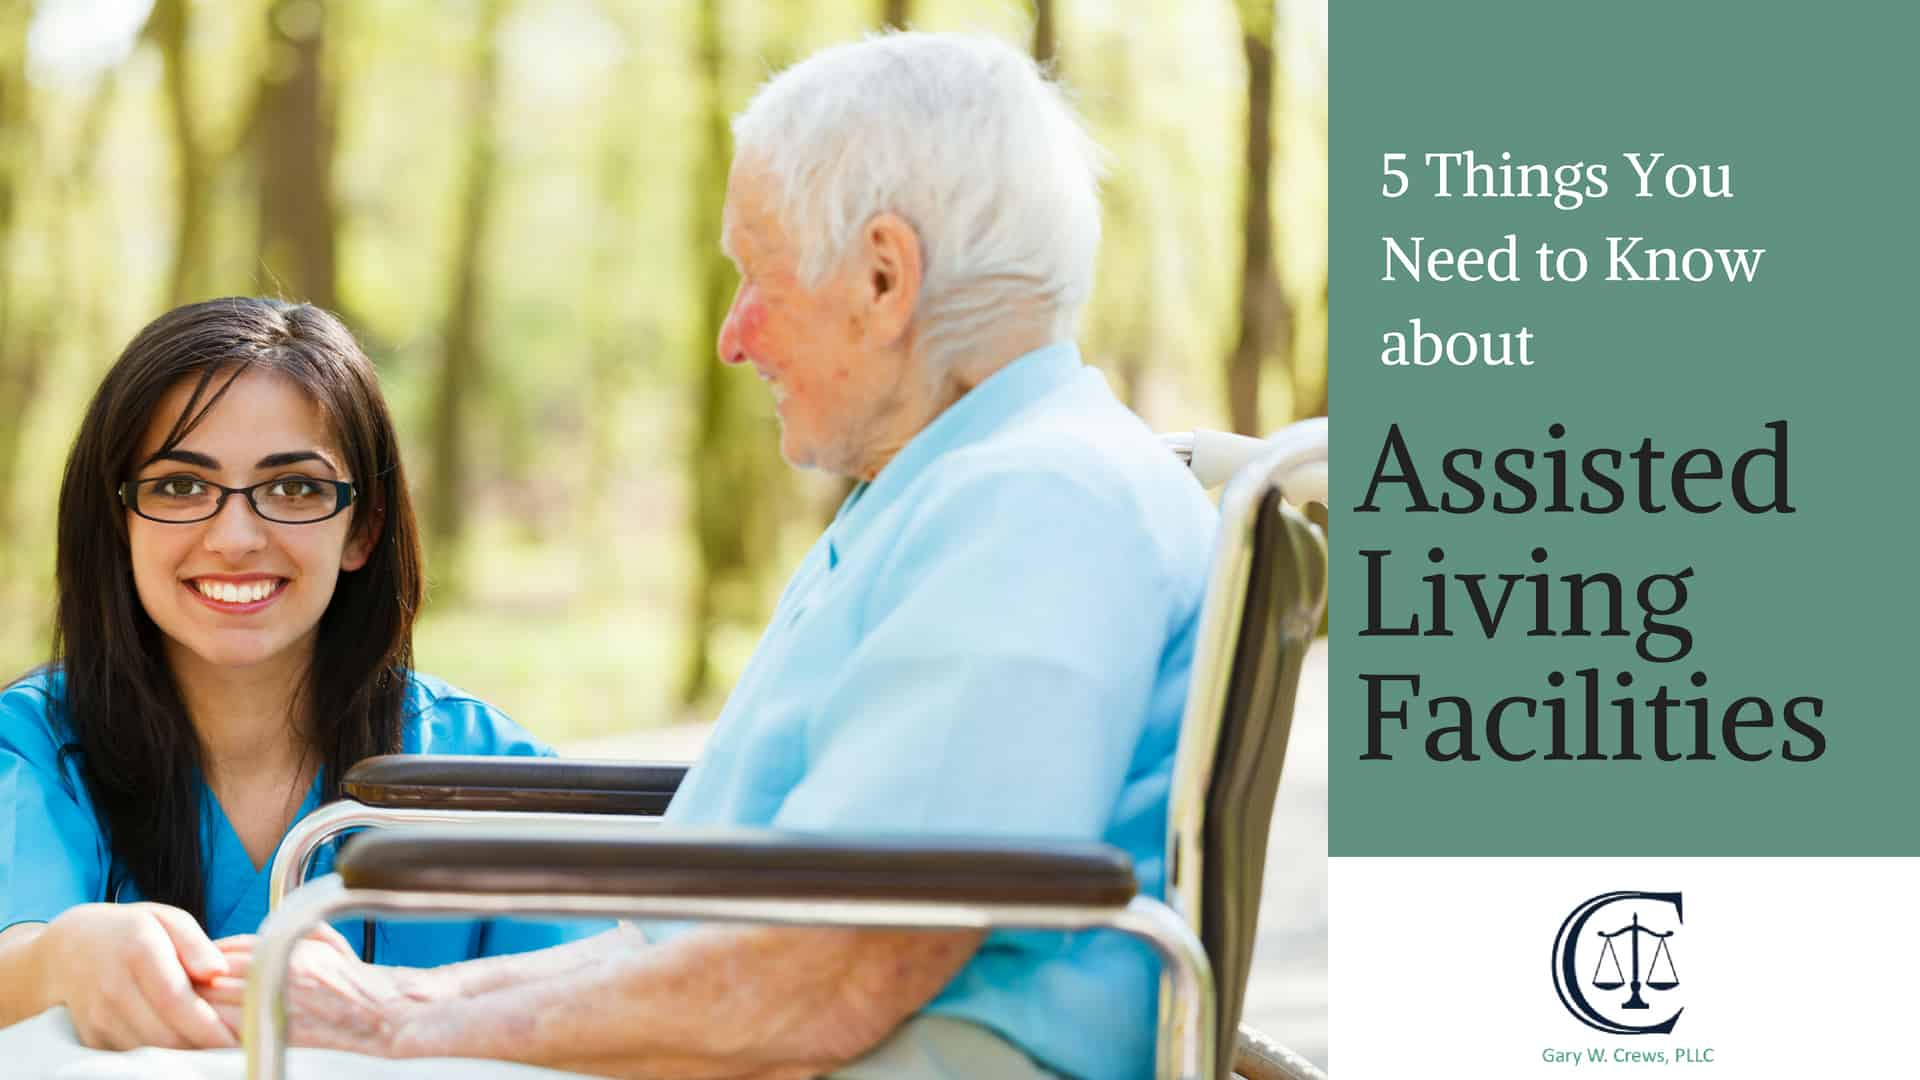 5 things you need to know about assisted living facilities - 5 Assisted - 5 THINGS YOU NEED TO KNOW ABOUT ASSISTED LIVING FACILITIES